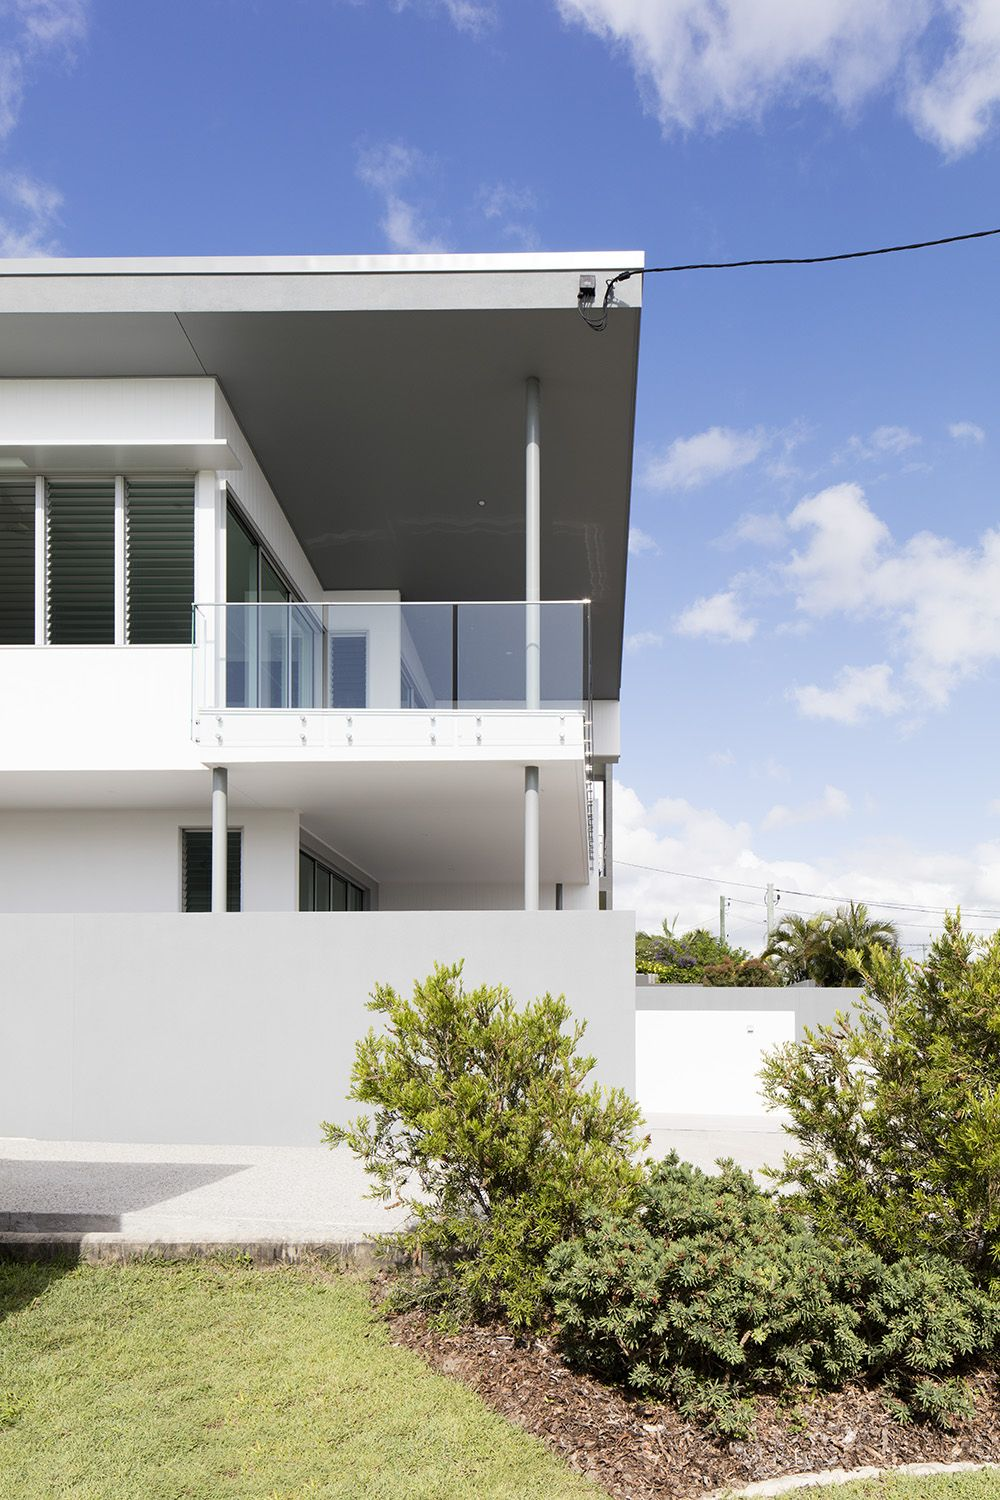 Back view of this modern home design by immackulate designer homes the kings beach project located on sunshine coast qld australia also rh pinterest